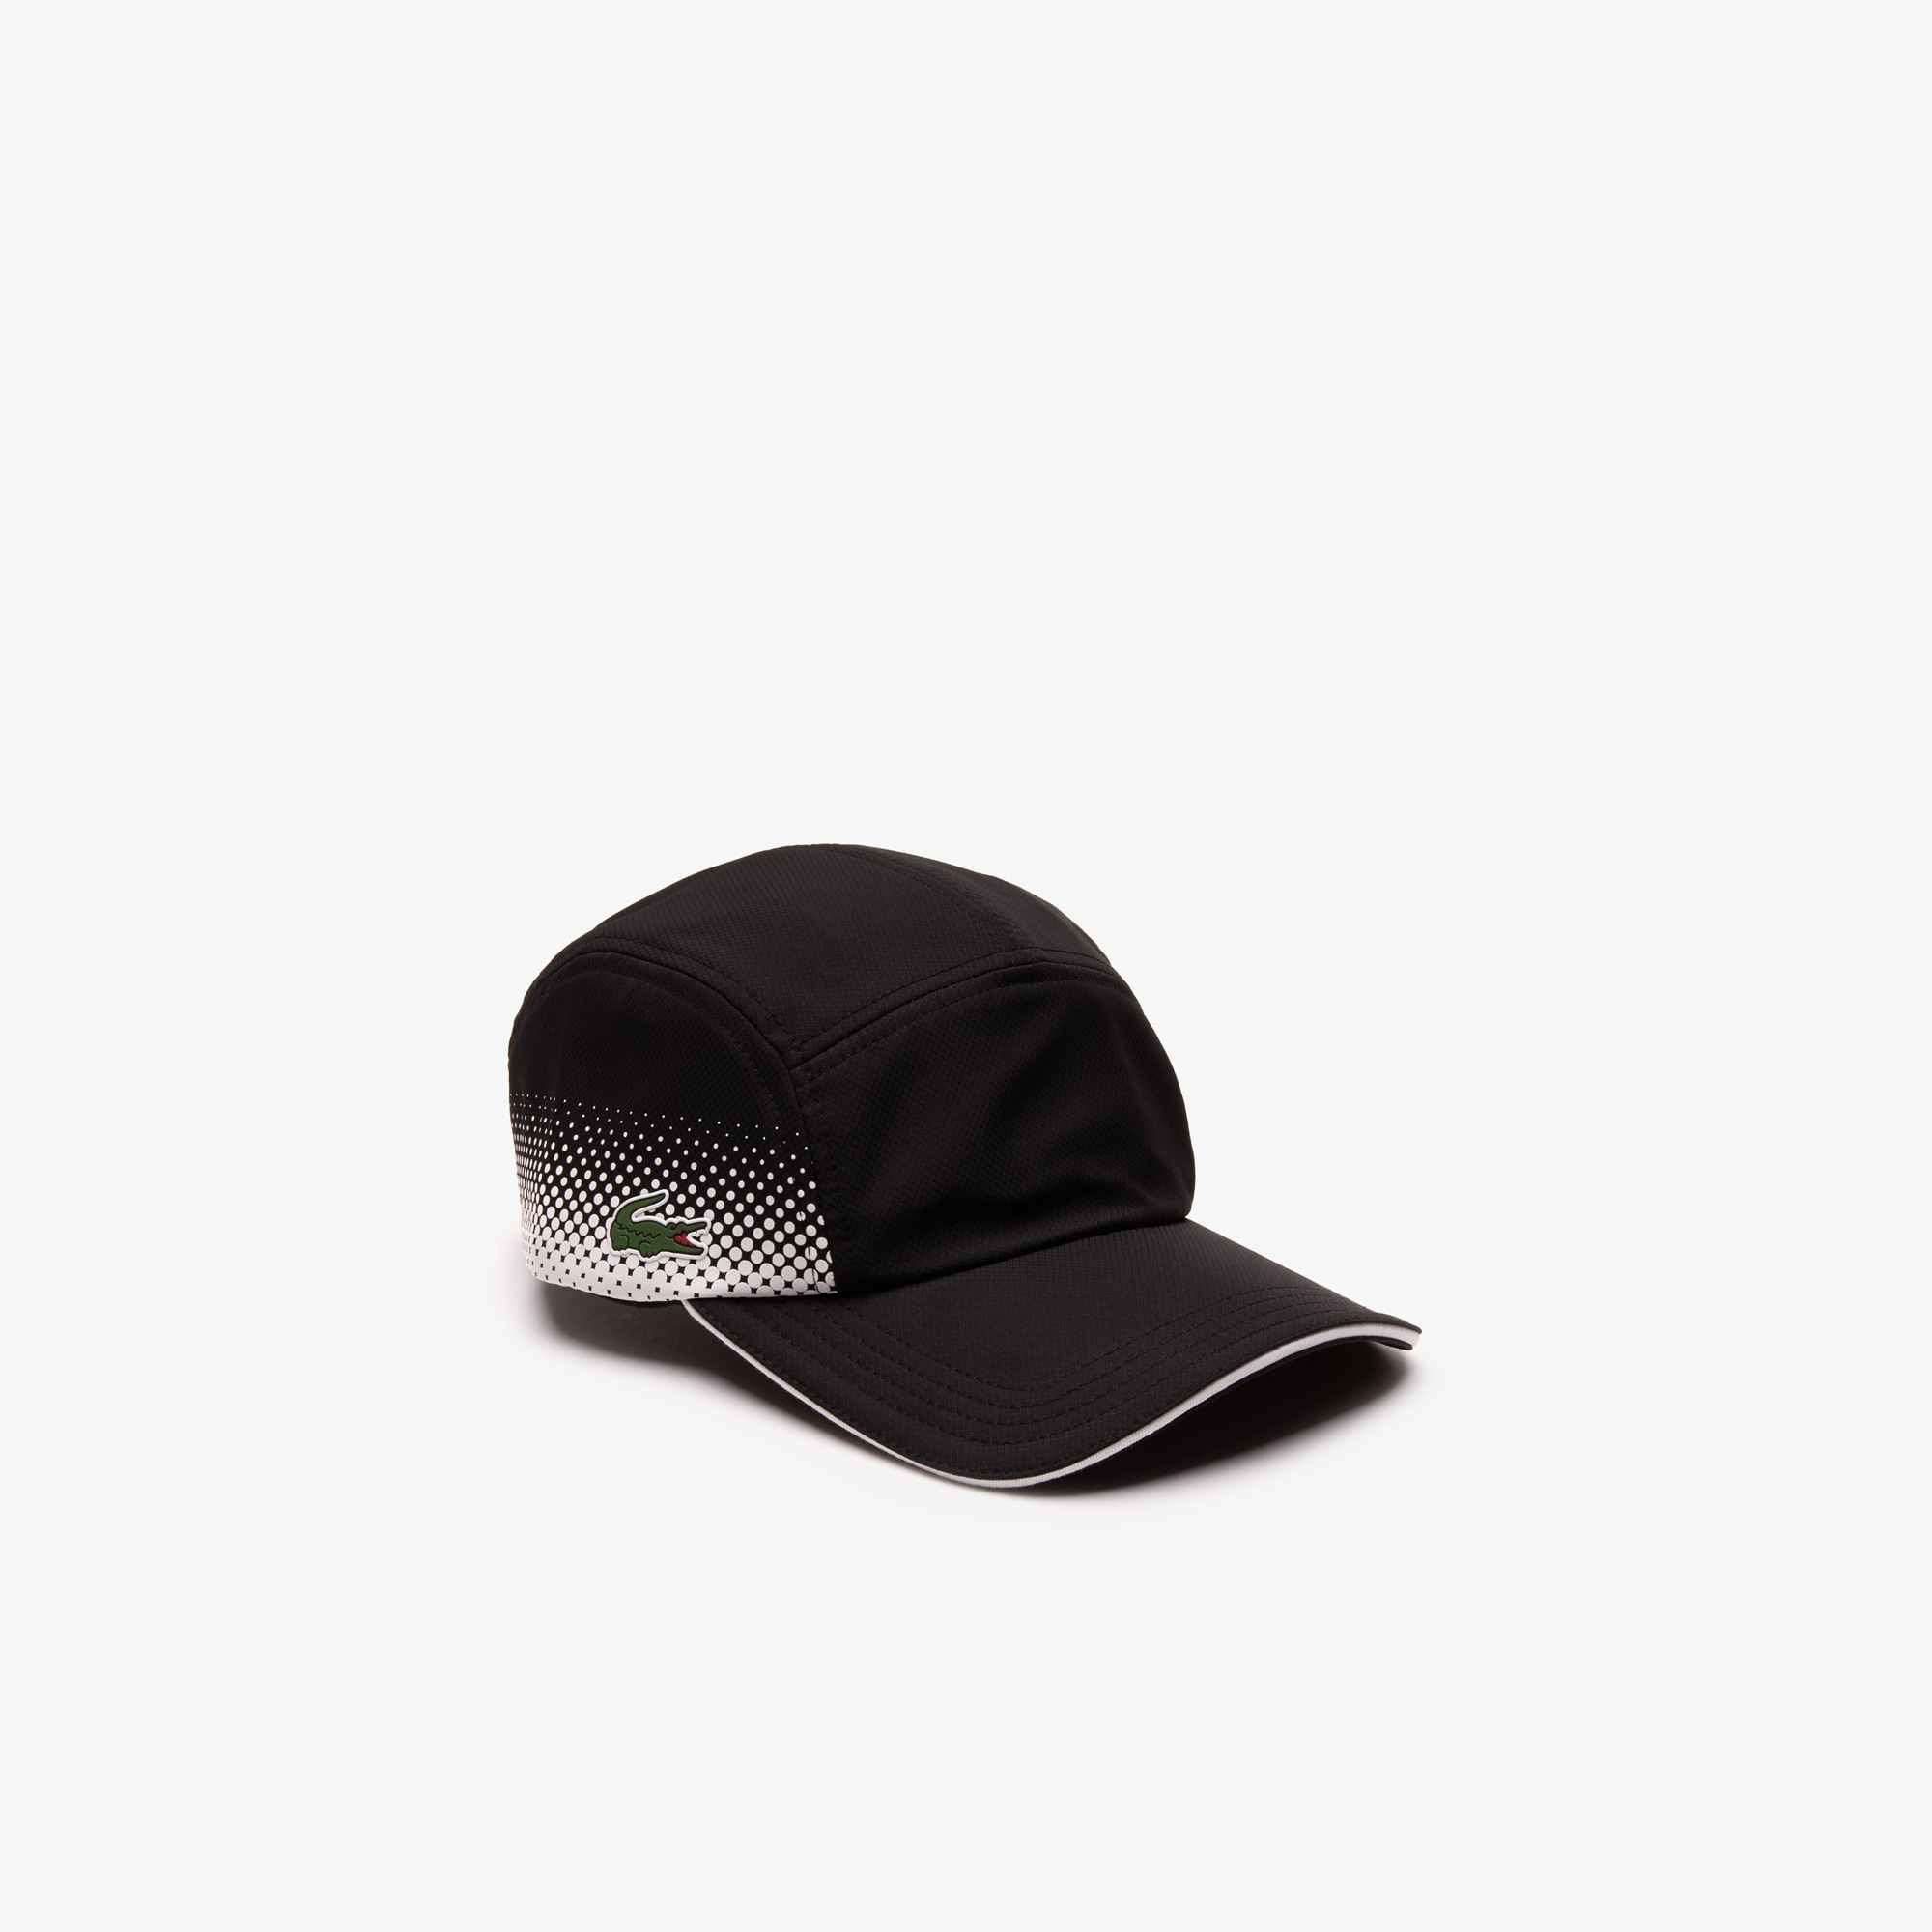 0b825d94b40 Men s Lacoste SPORT Shaded Print And Contrast Piping Tennis Cap